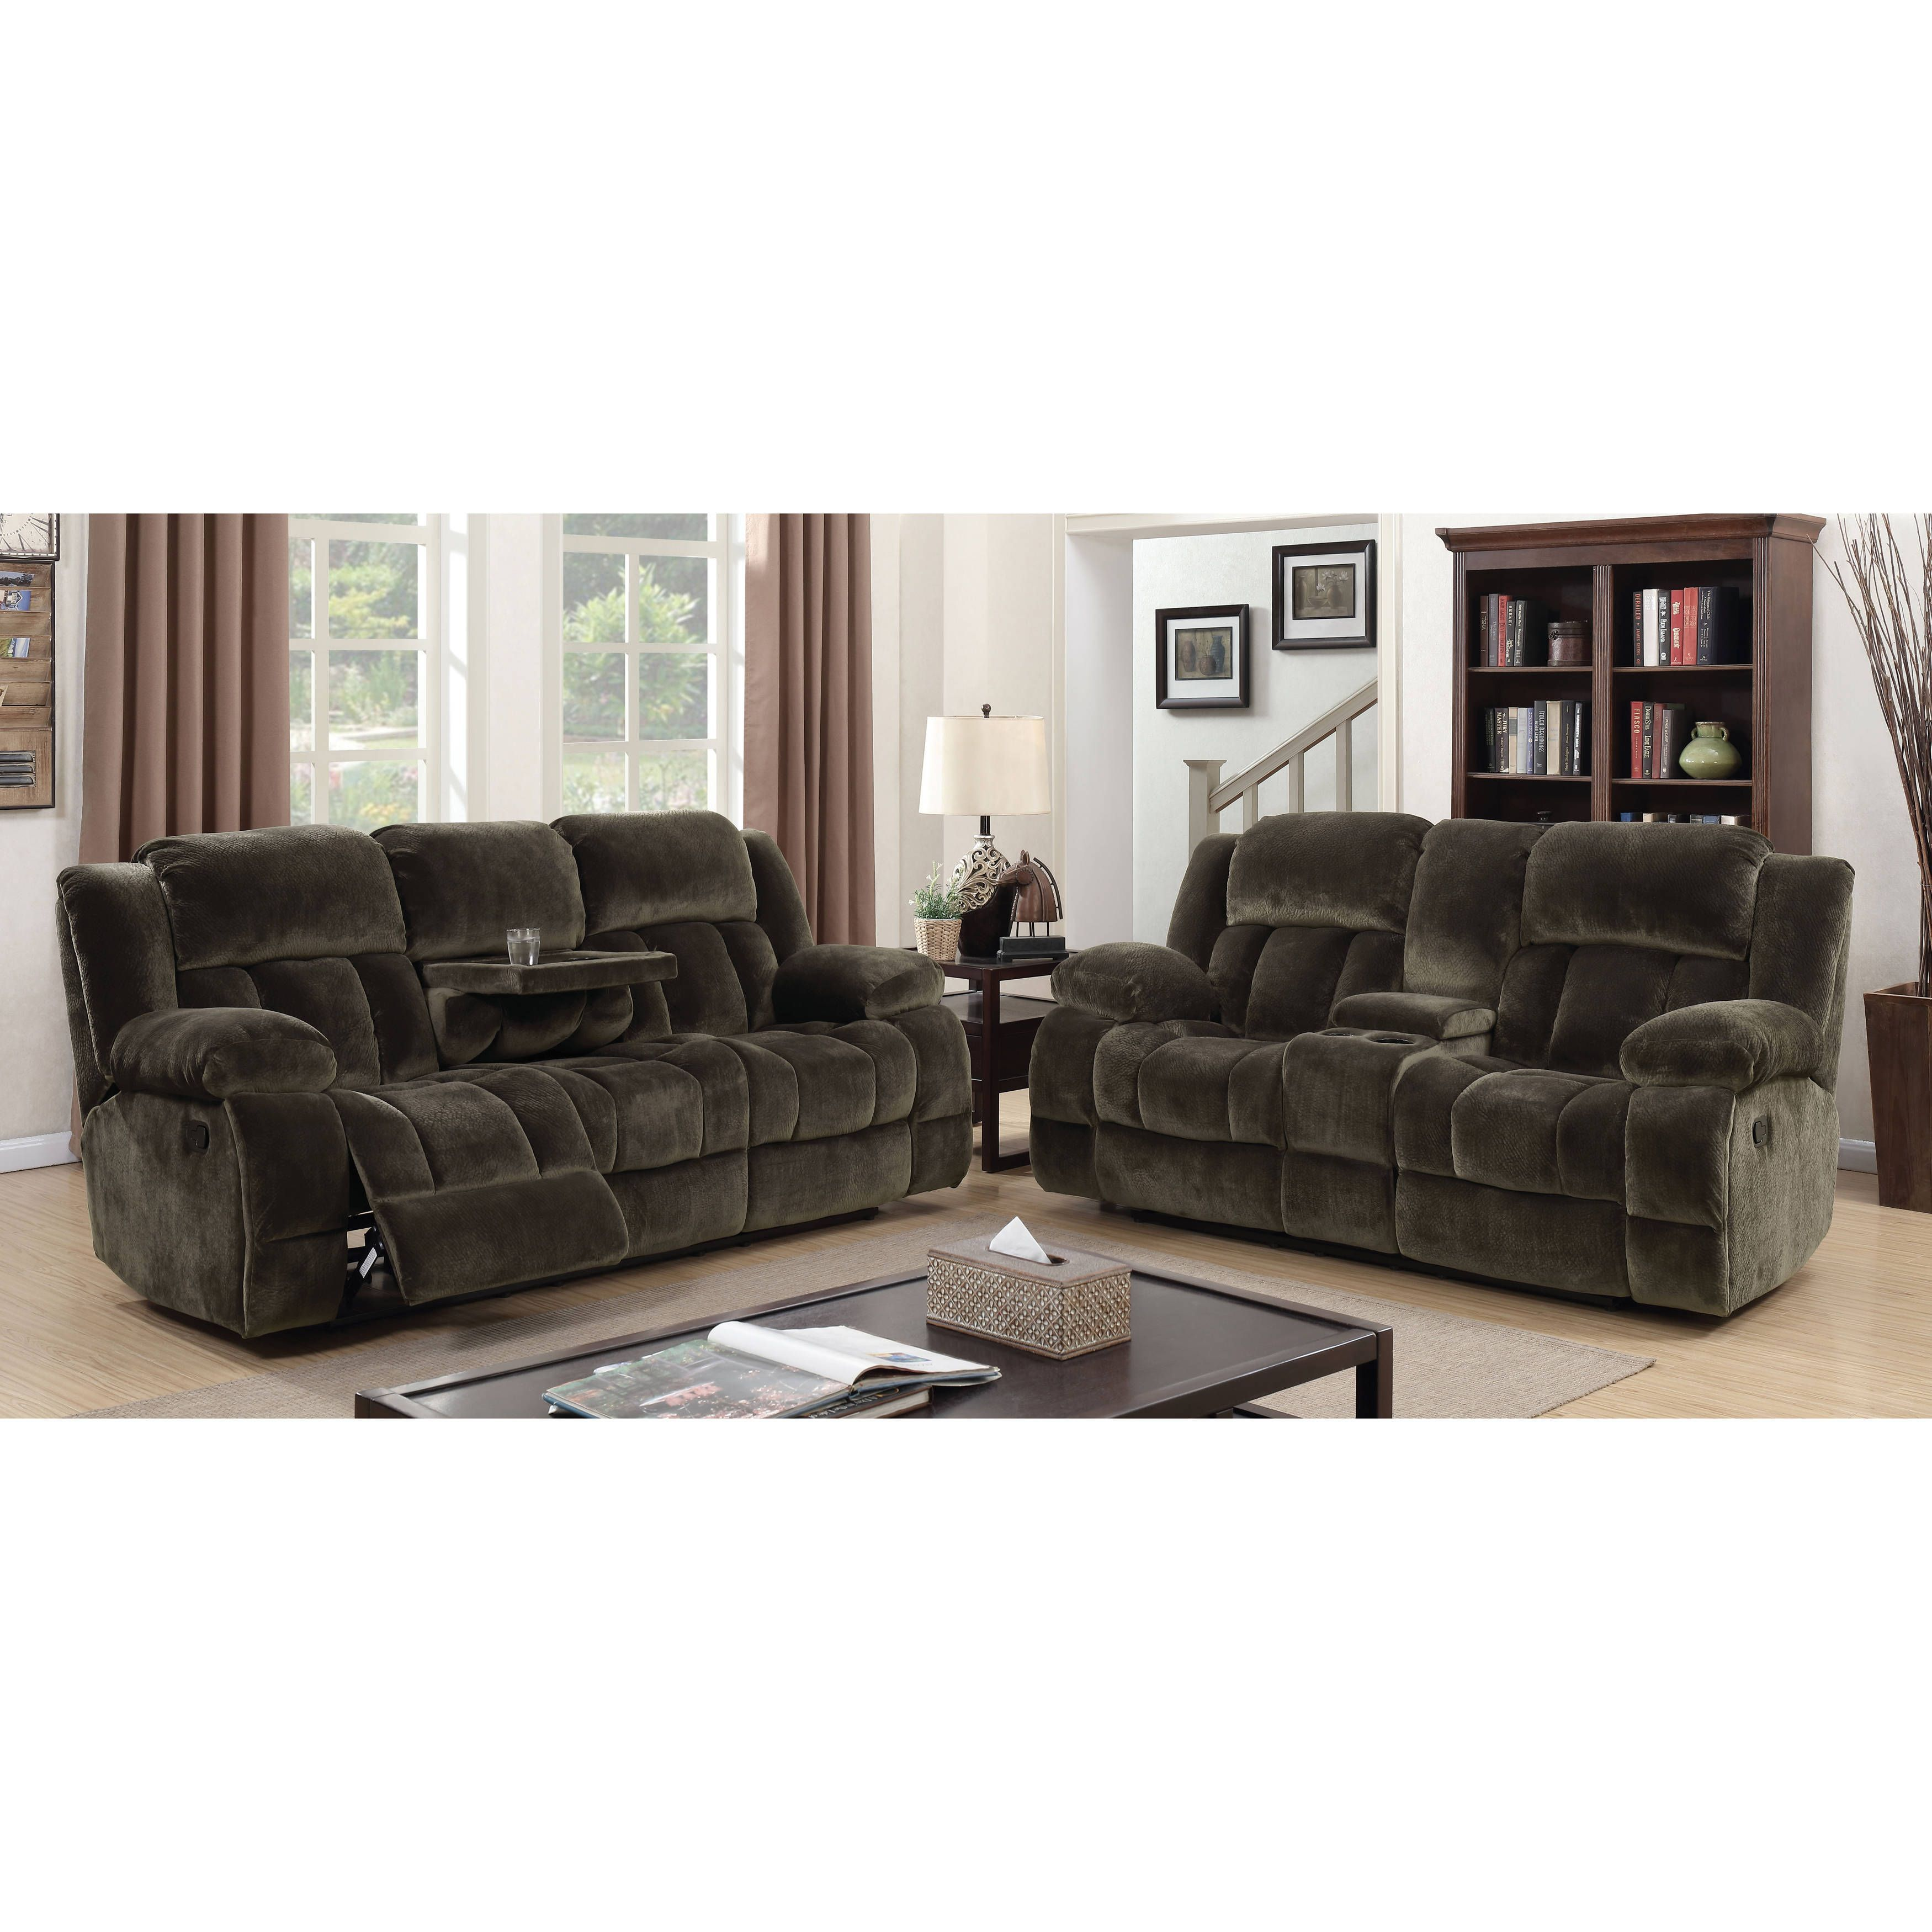 Furniture Of America Malin Traditional 2 Piece Brown Champion Fabric Reclining Sofa Set